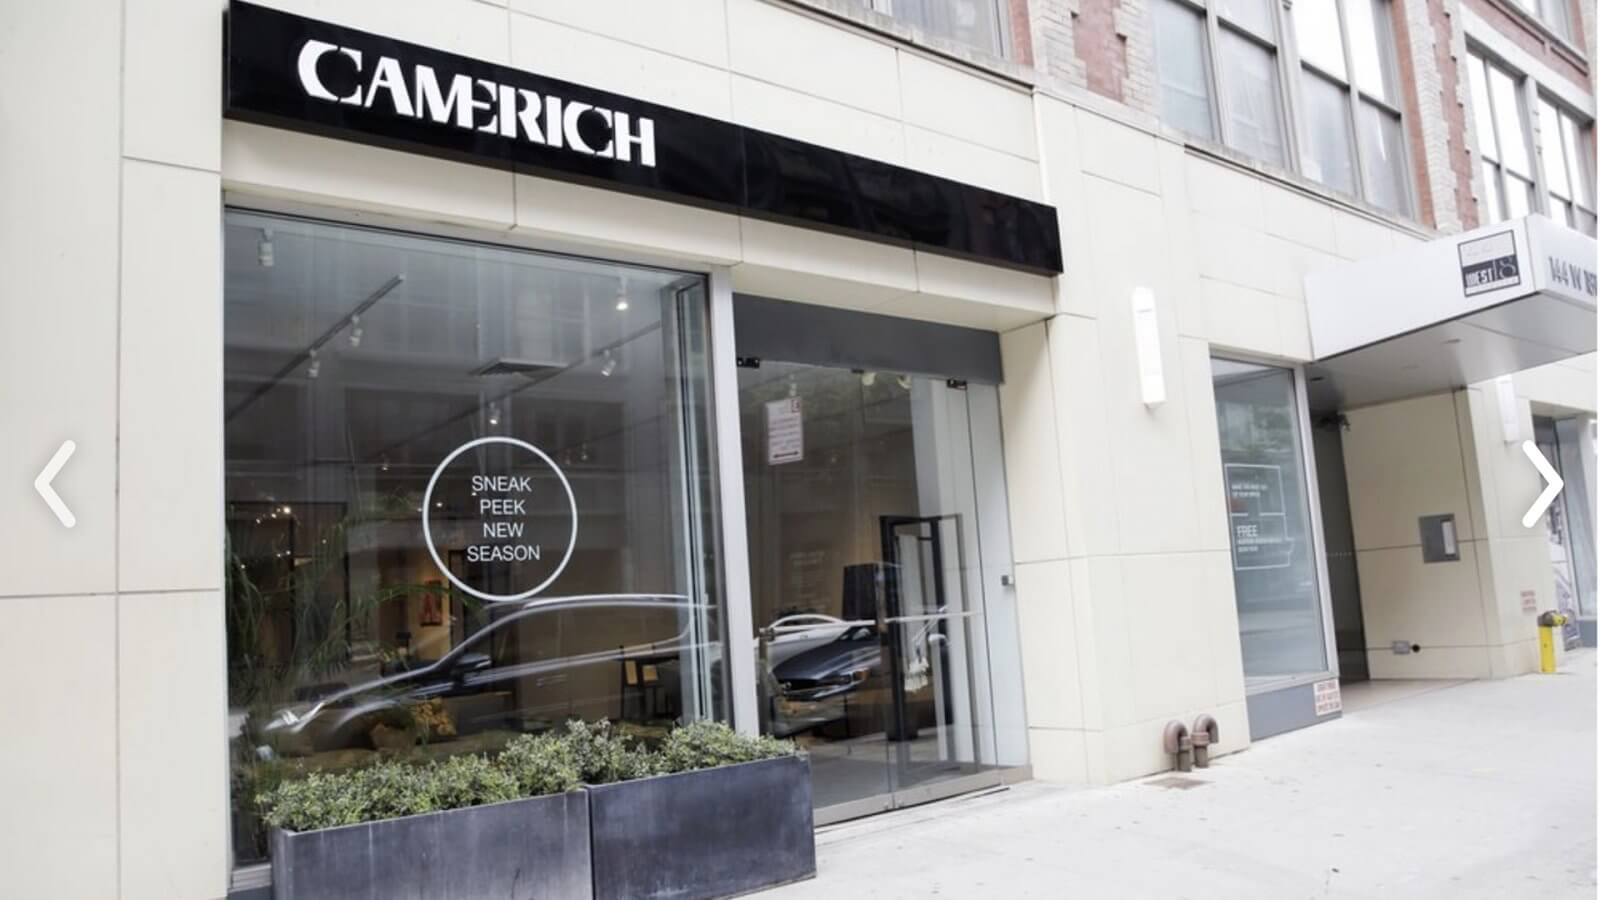 camerich nyc